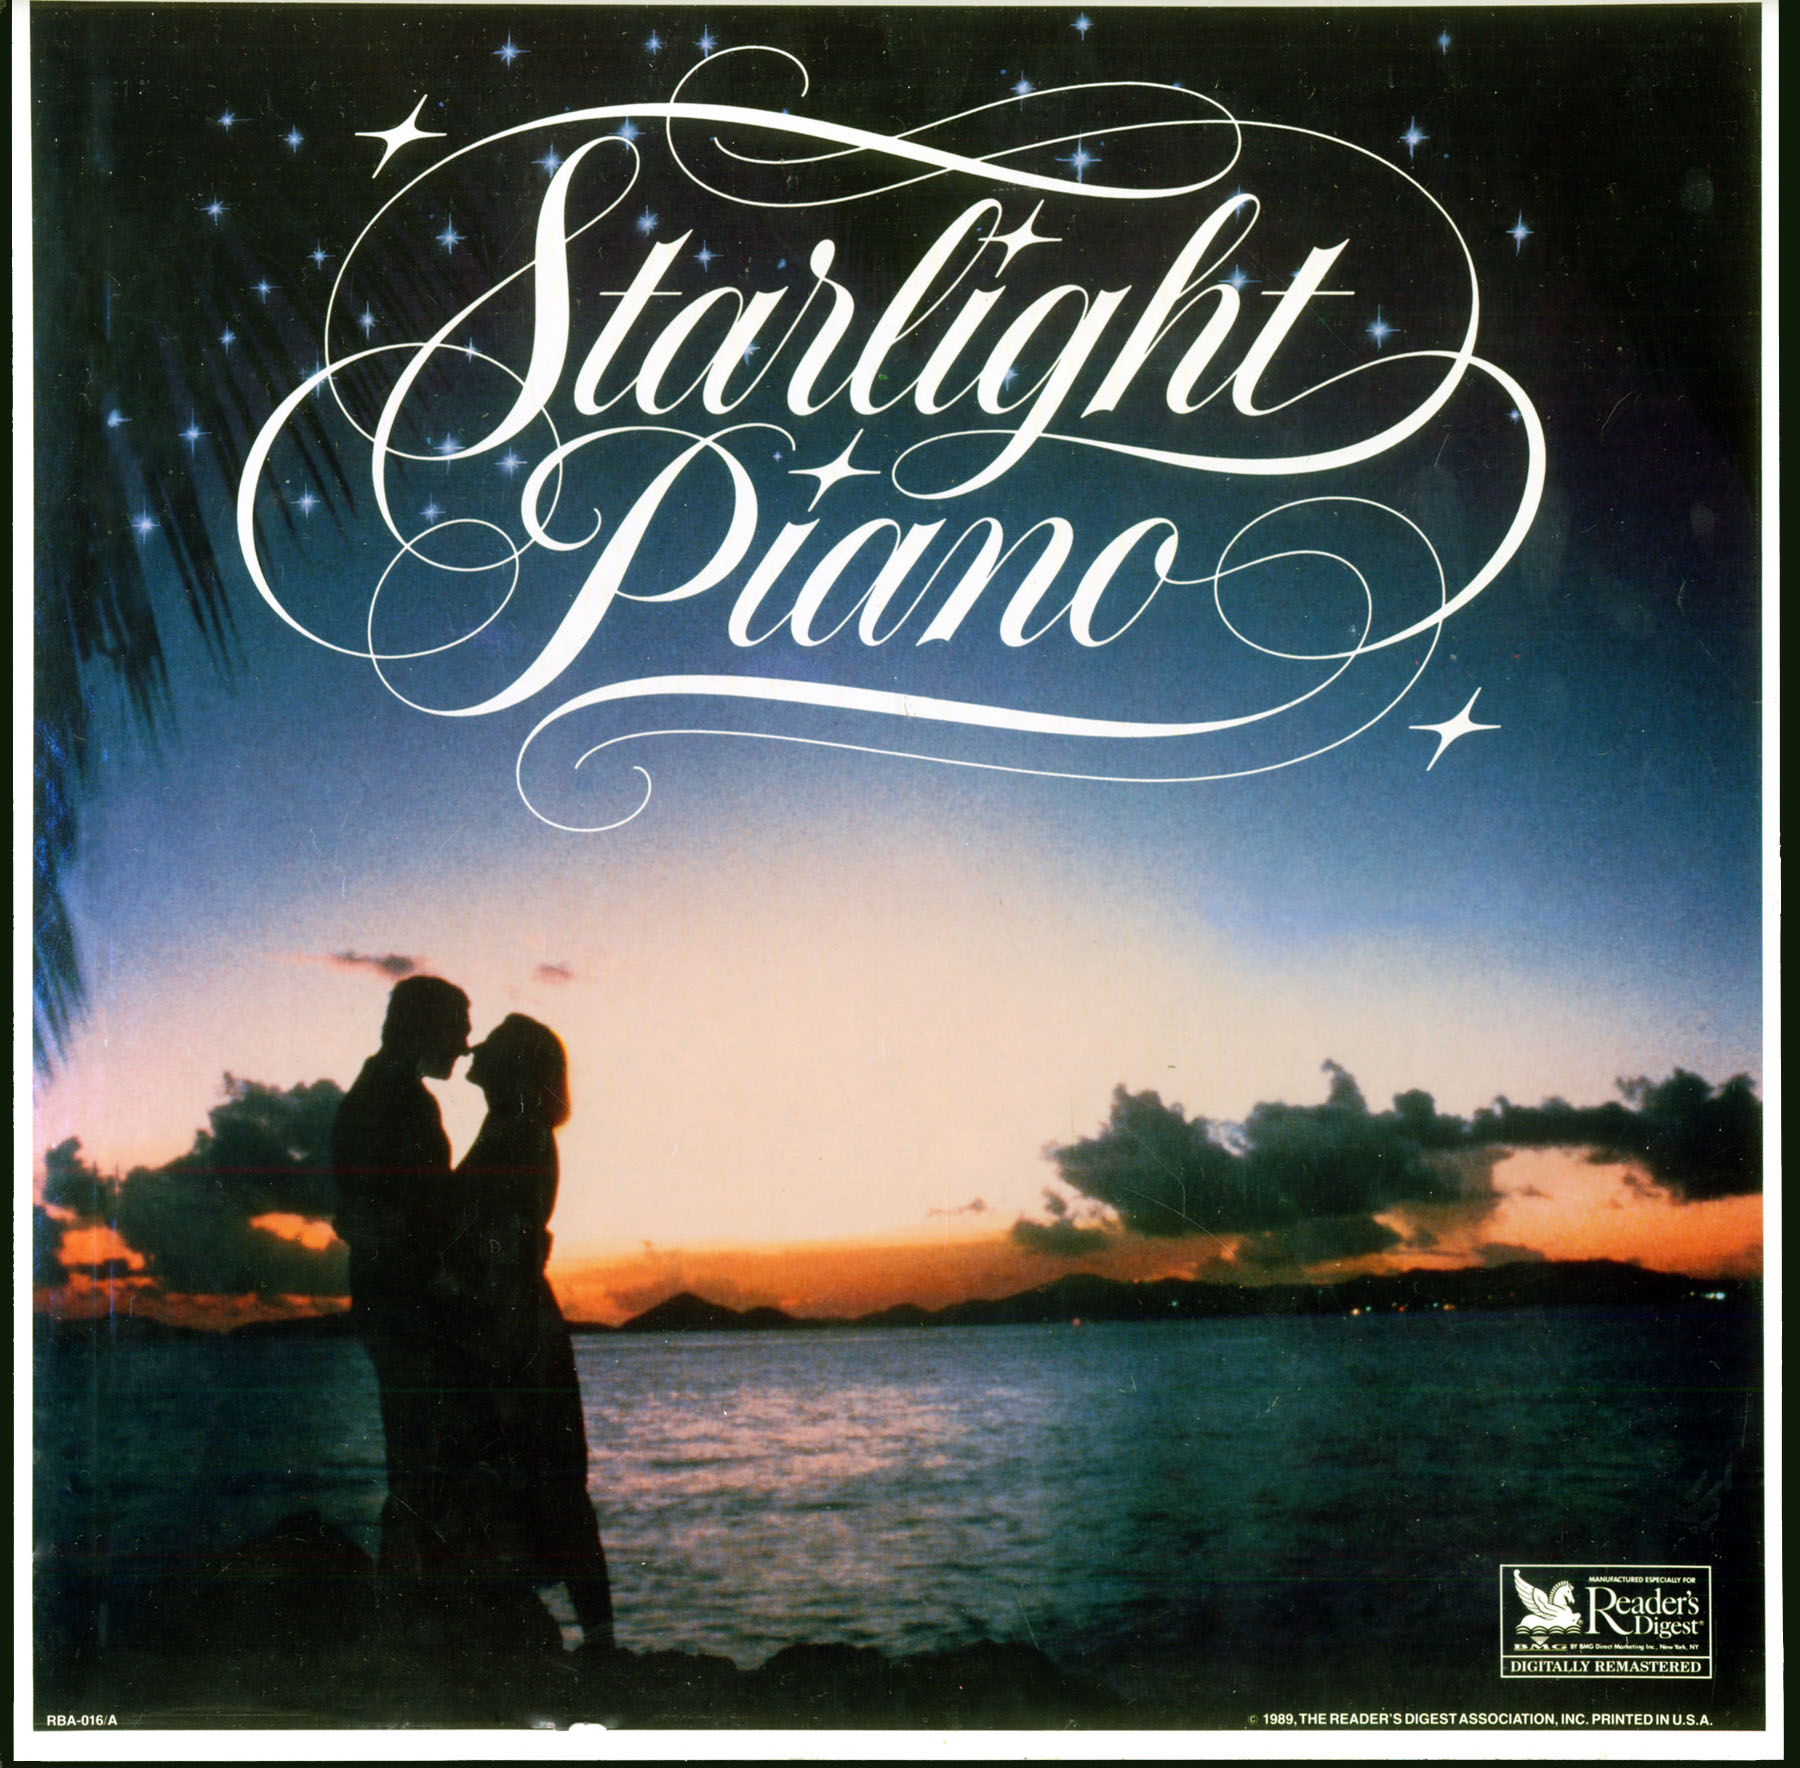 RBA016 - Starlight Piano on CD